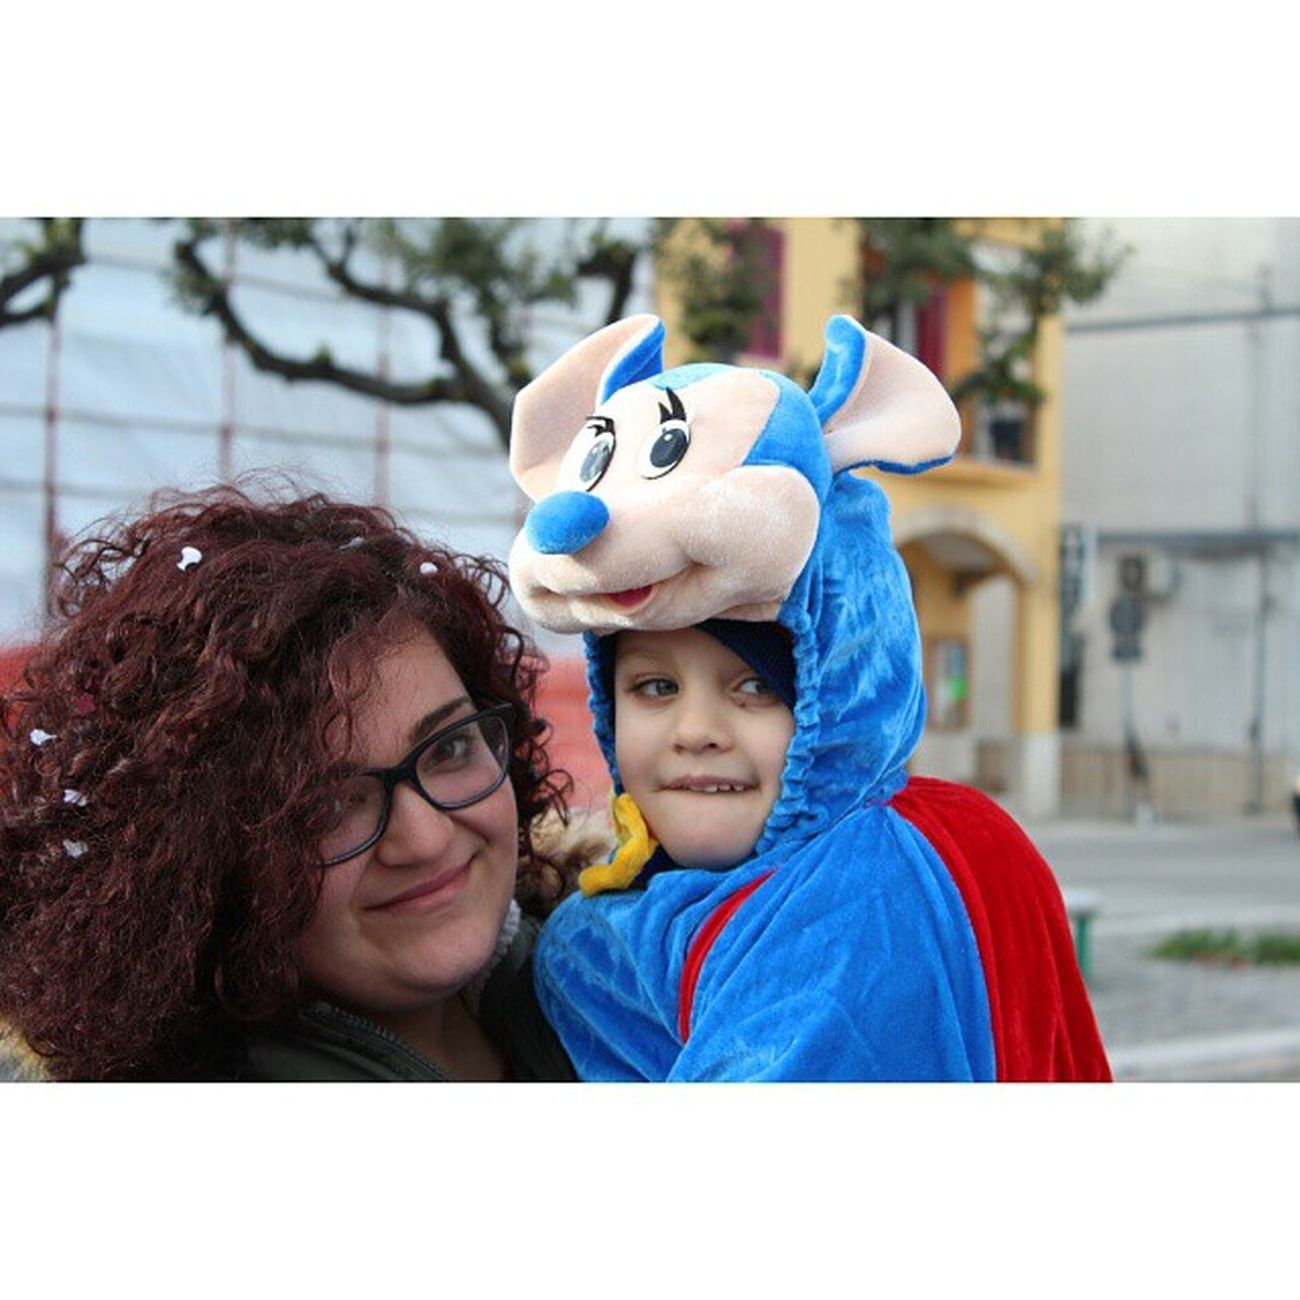 Ehi piccolino ♡ Me Io Lui Cugino Piccolomio Piccolo Mio Piccolino Cuore Carnevale Topo Topolino  Ricci Bambino Bimbi Disney Reflex Canon Festa Party Foto Photo Ph Instalife Instapic pic picoftheday images serenità felicità